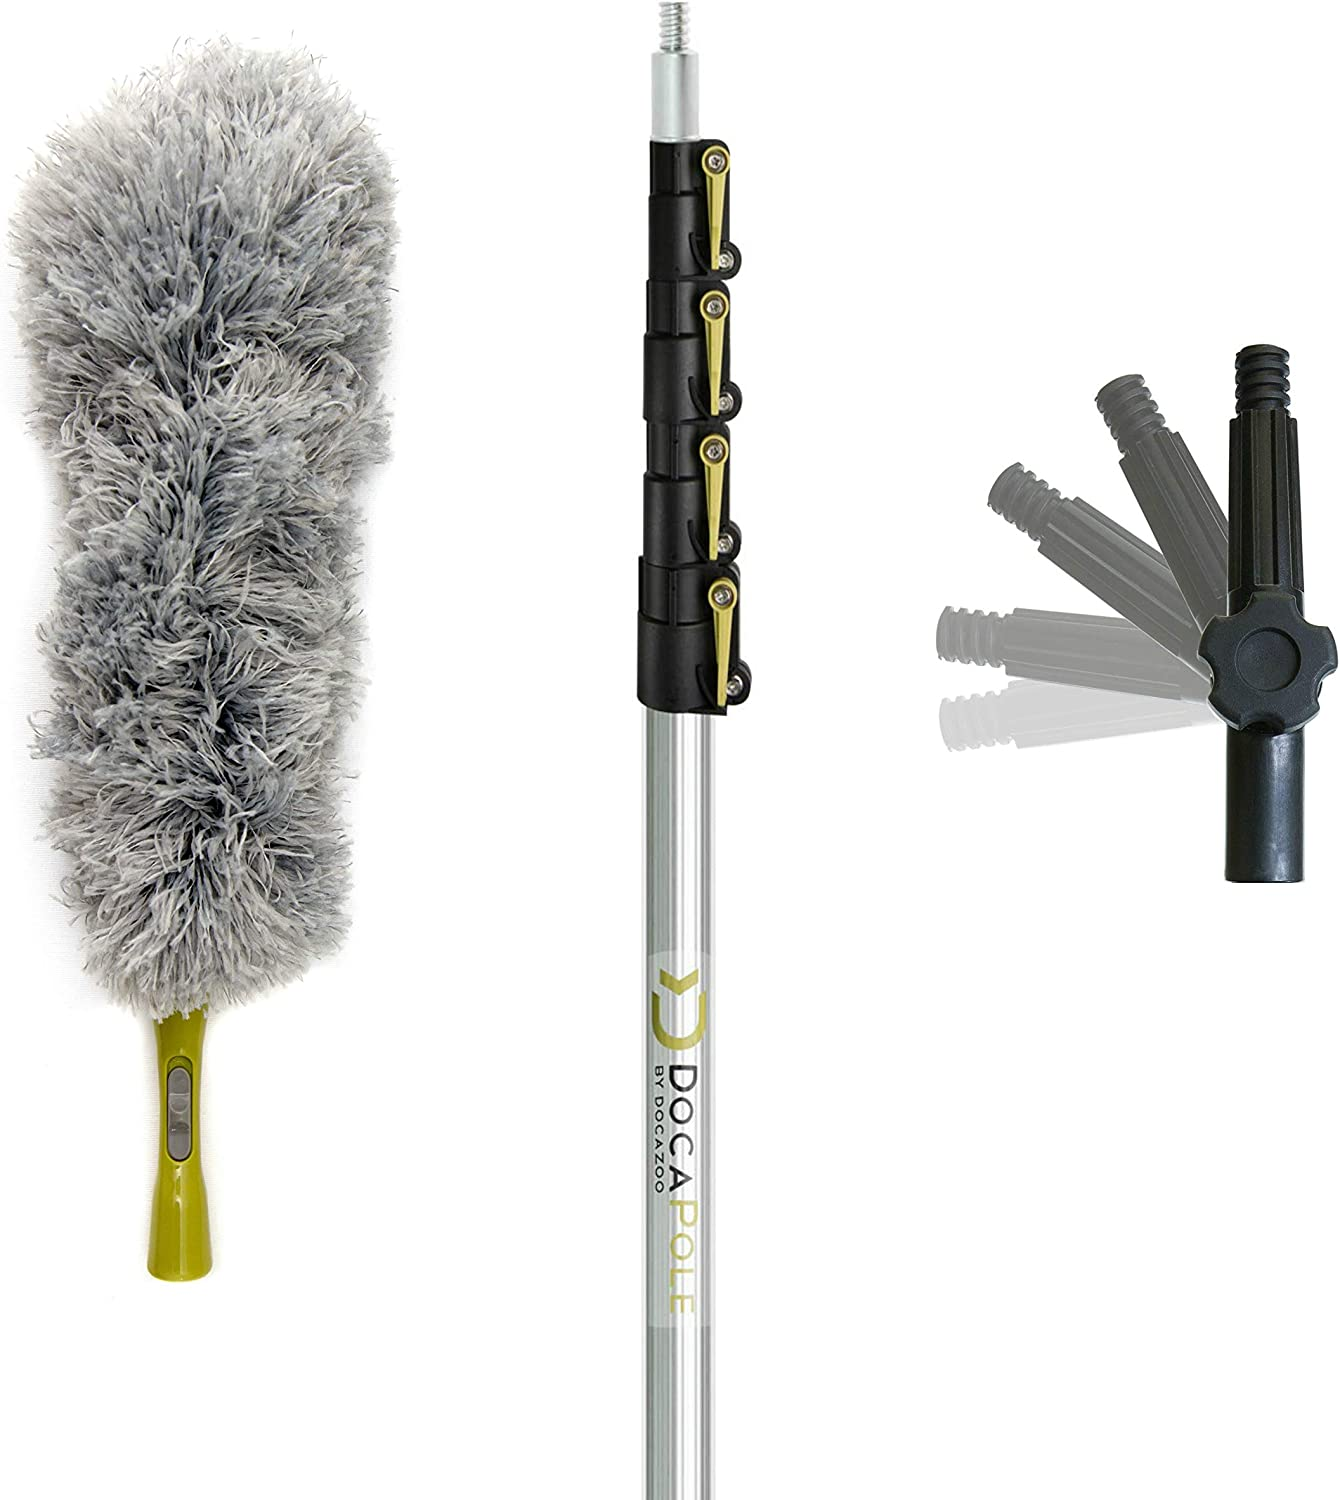 DocaPole 6-24 Foot Extension Pole + Microfiber Feather Duster // High Reach Dusting Kit for Dusting High Ceilings and Surfaces with Telescopic Pole // Telescoping Pole for Dusting